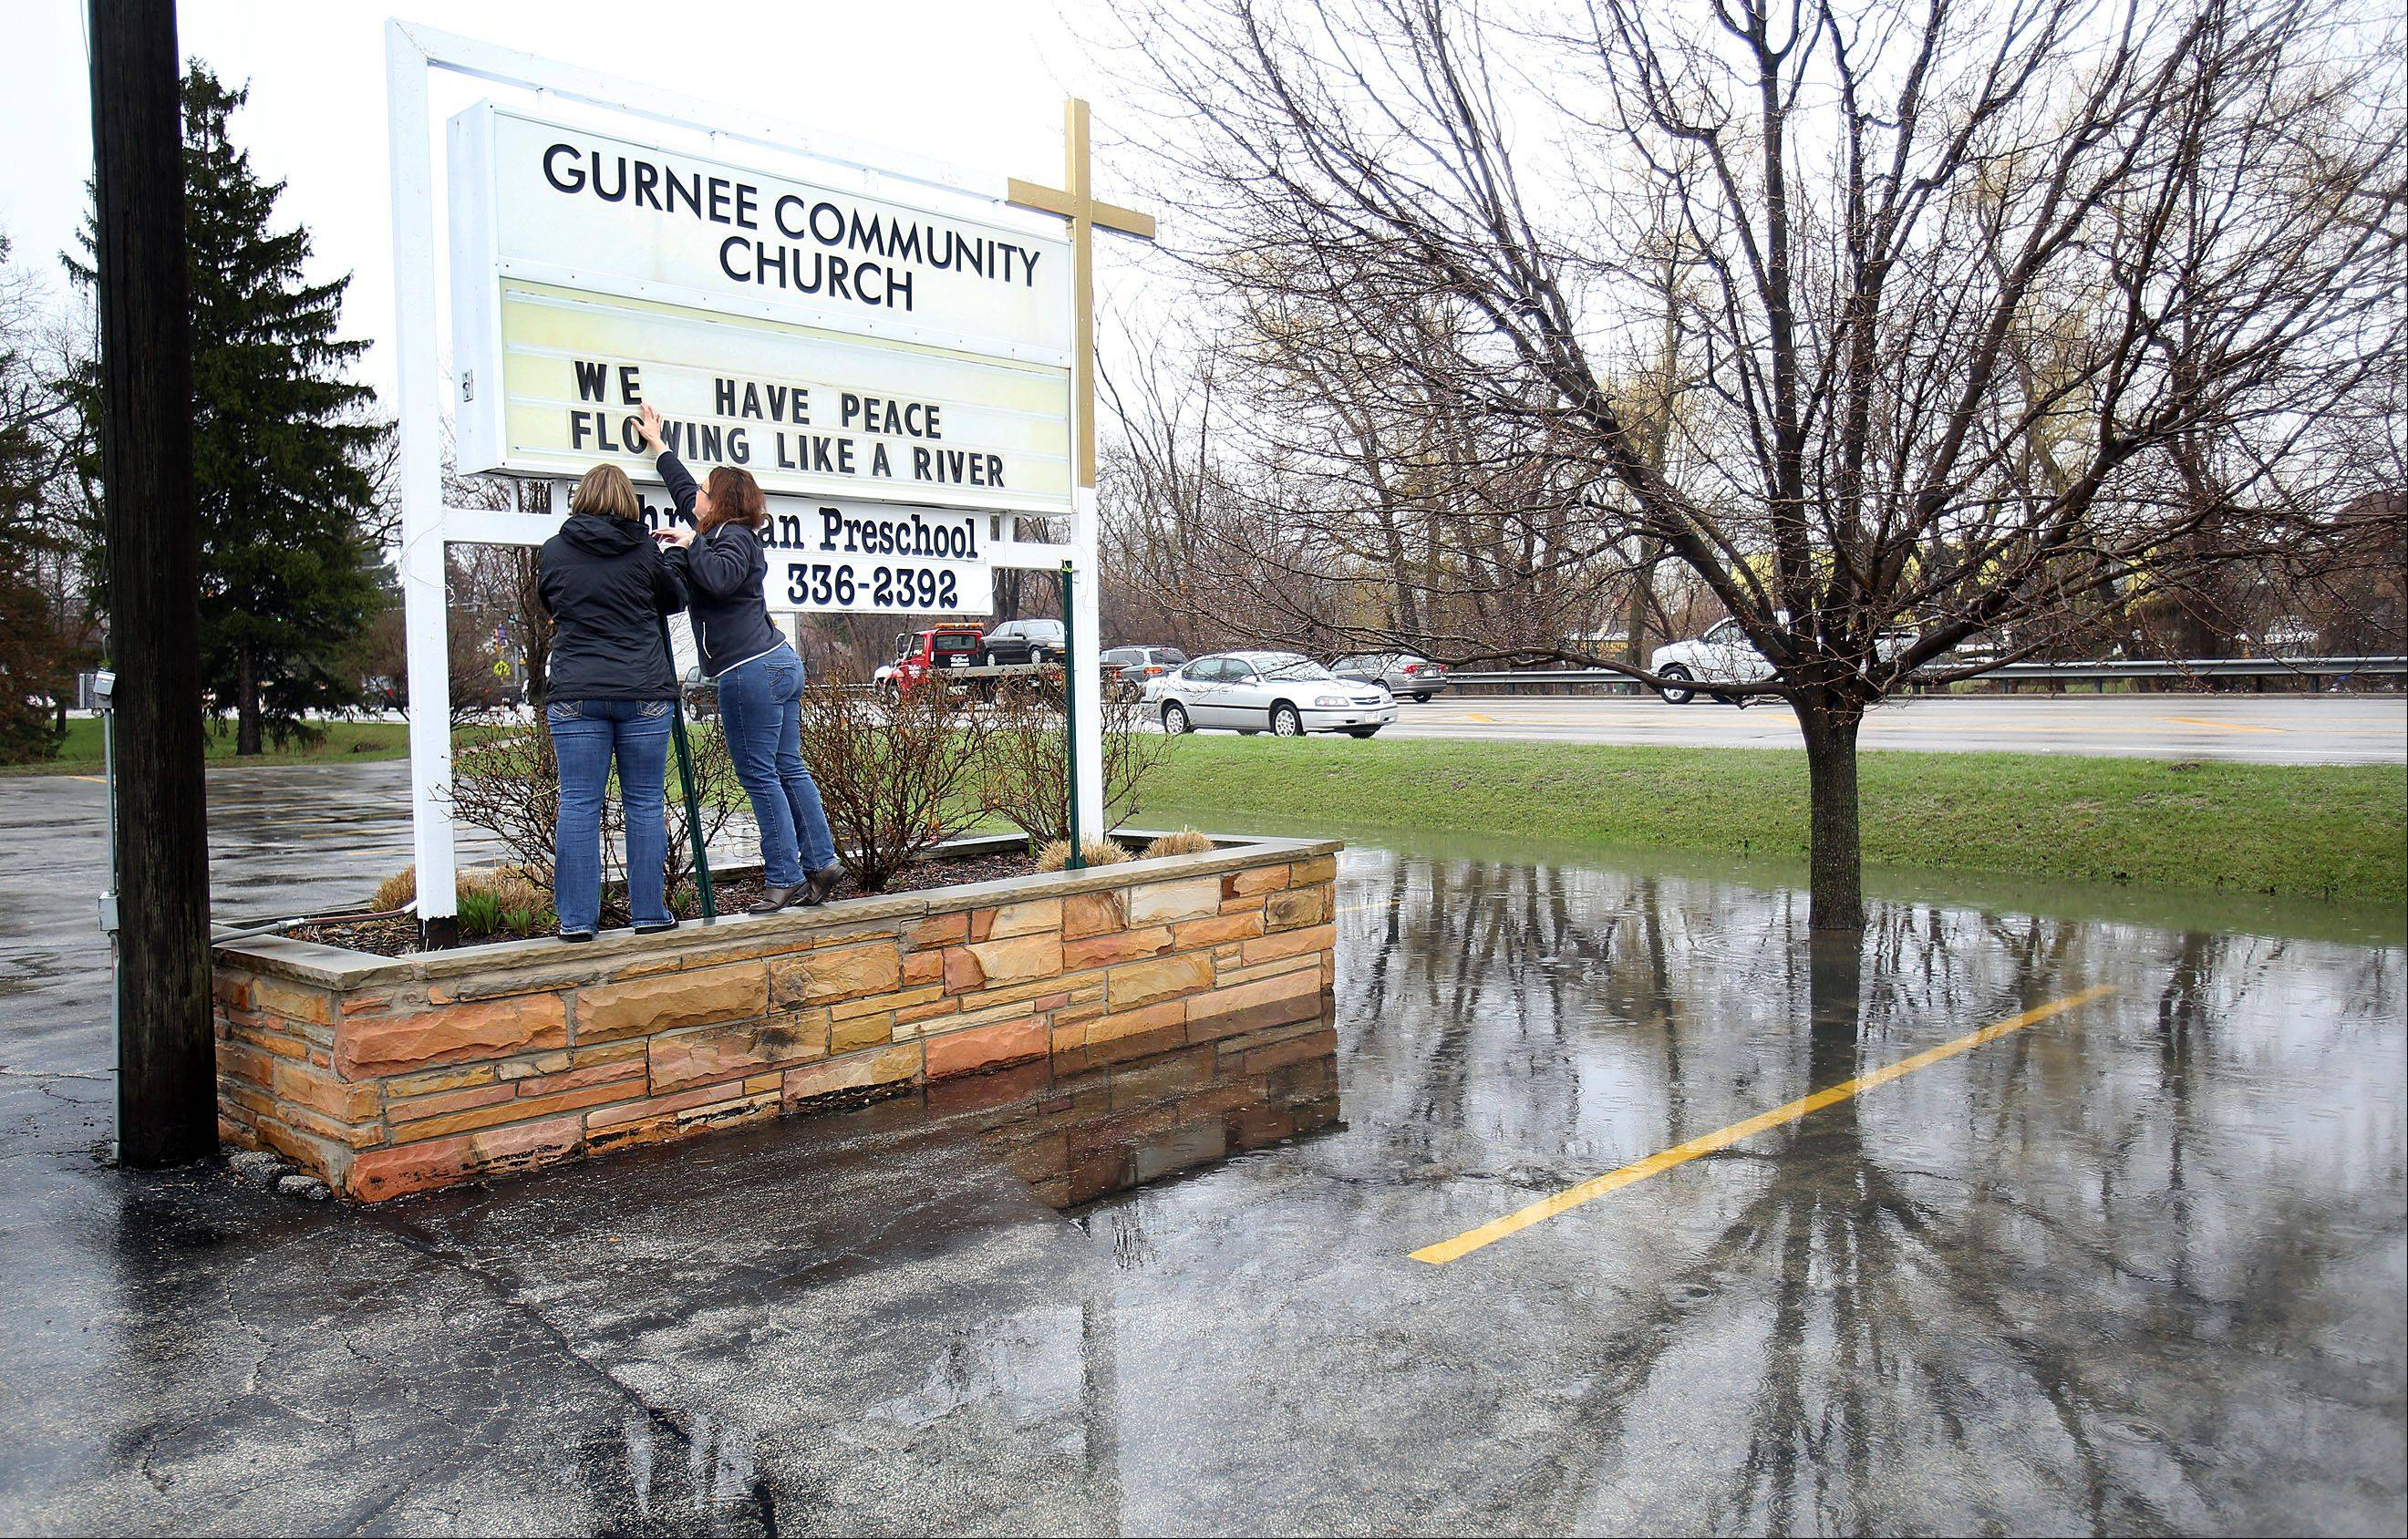 "Gurnee Community Church employees Stacey Rowan, left, and Shawn Robards create a marquee message of ""We Have Peace Flowing Like a River"" on Thursday in Gurnee. The church sign offered a similar message when the area flooded in 2004."